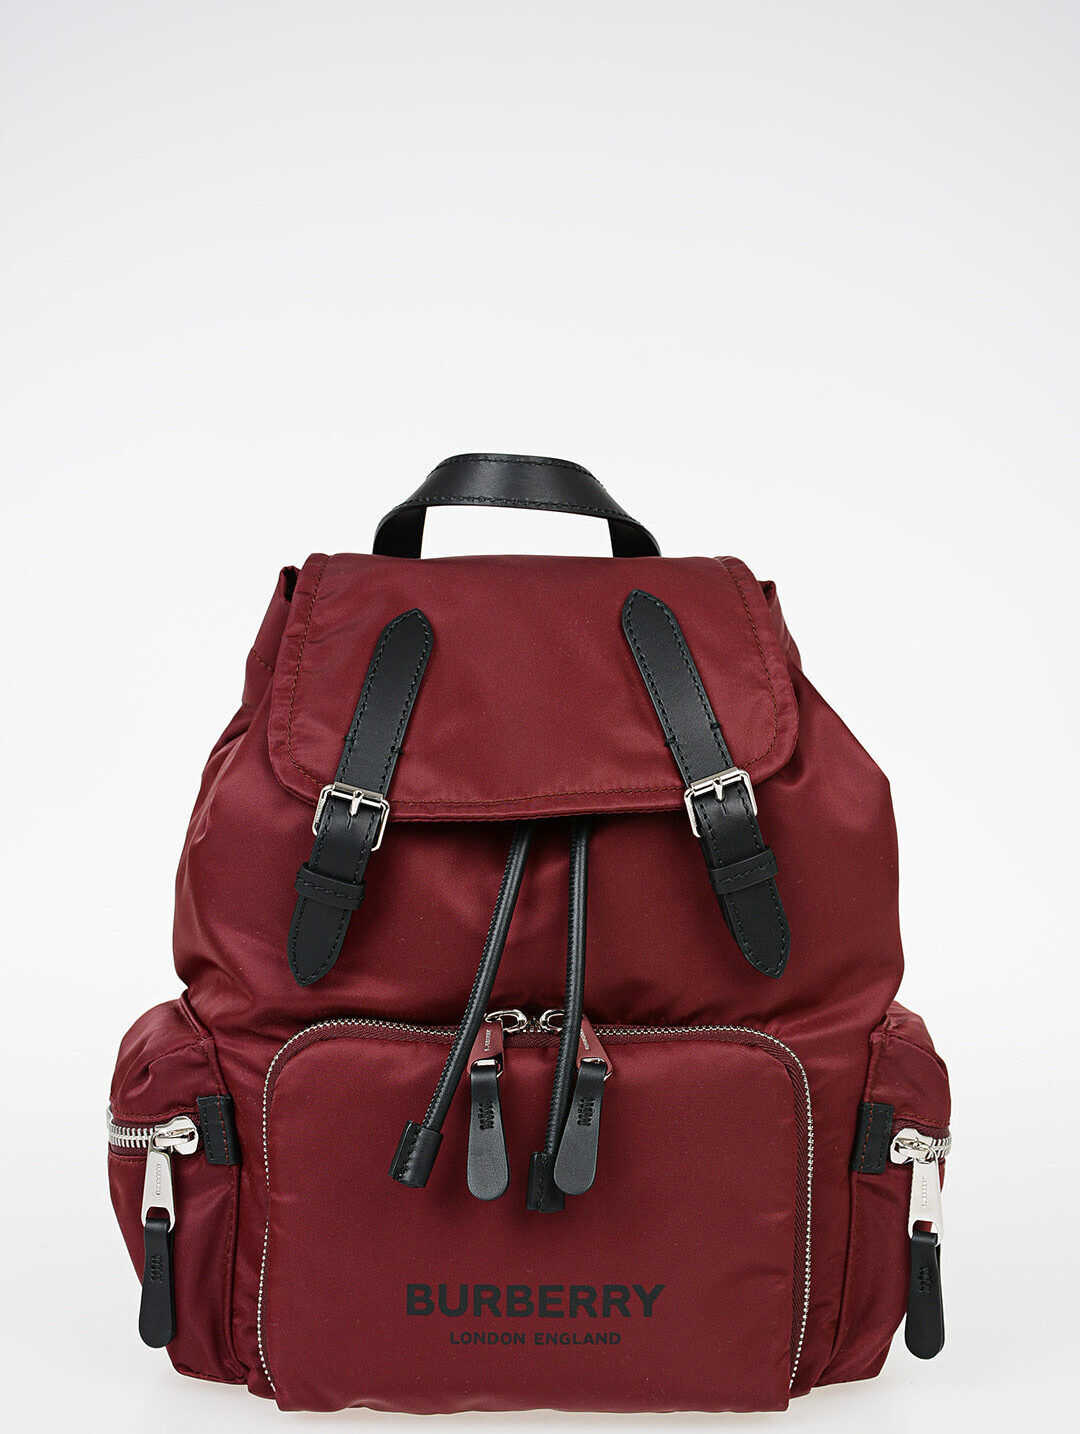 Burberry Fabric RUCKSACK Backpack RED